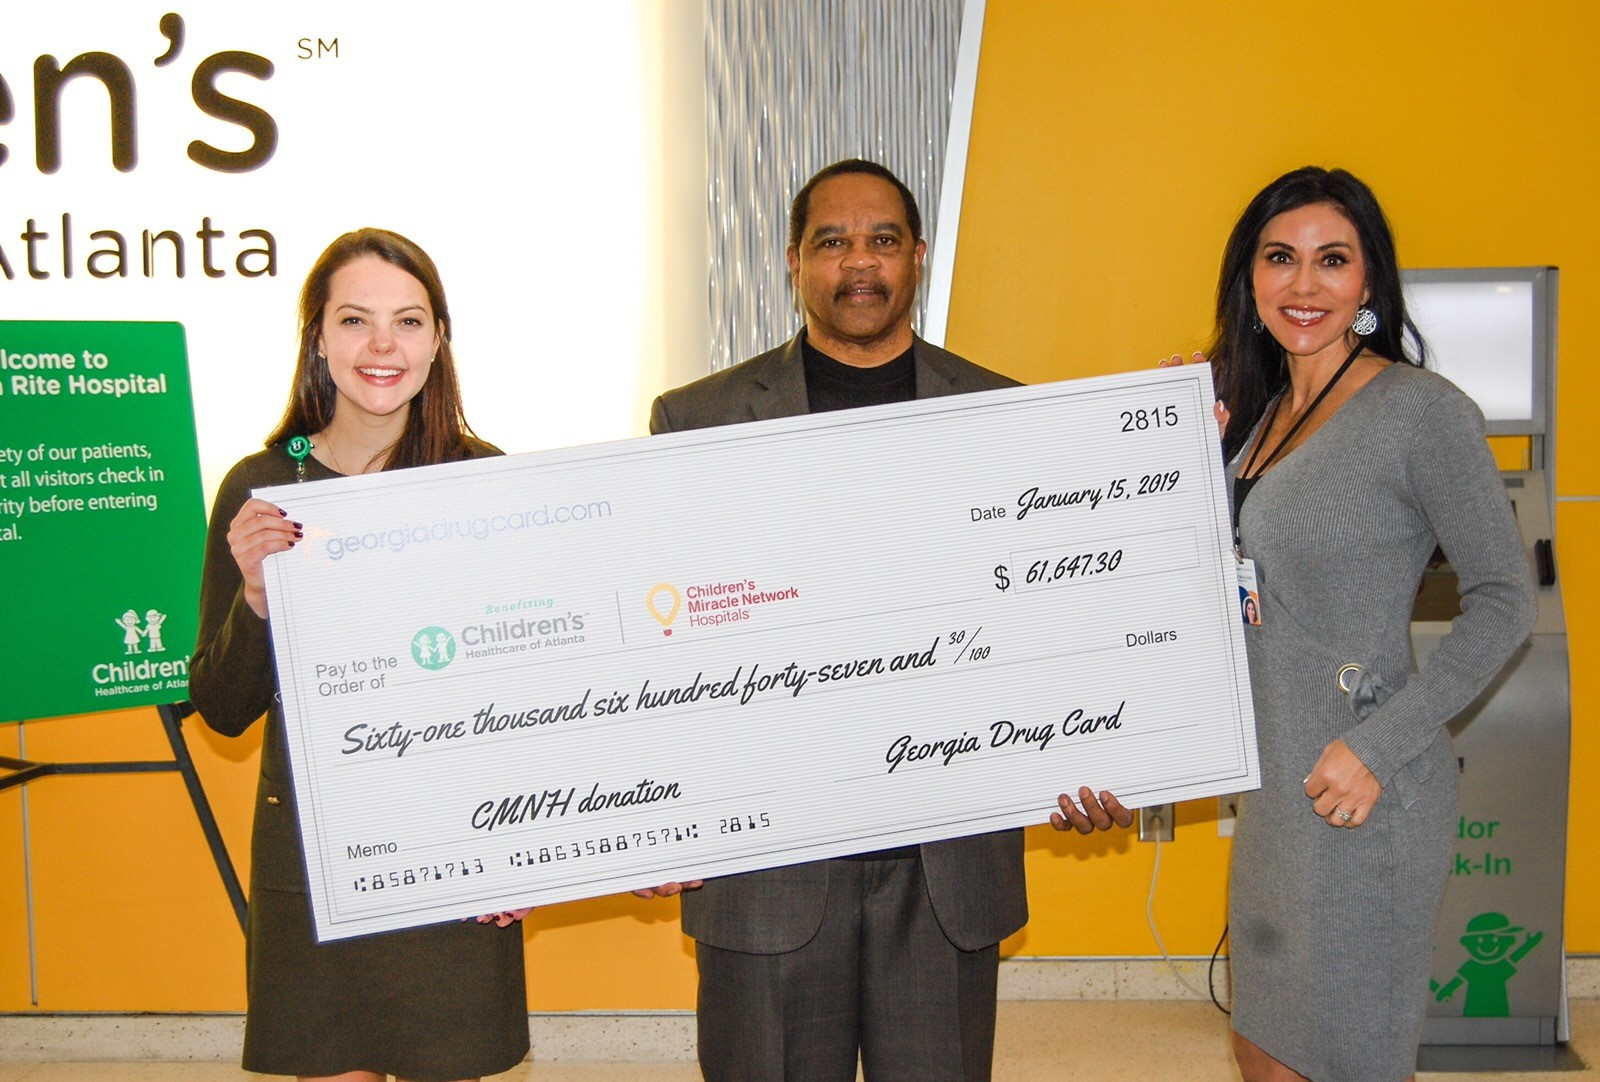 Children's Healthcare of Atlanta Receives Support from Georgia Drug Card and United Networks of America